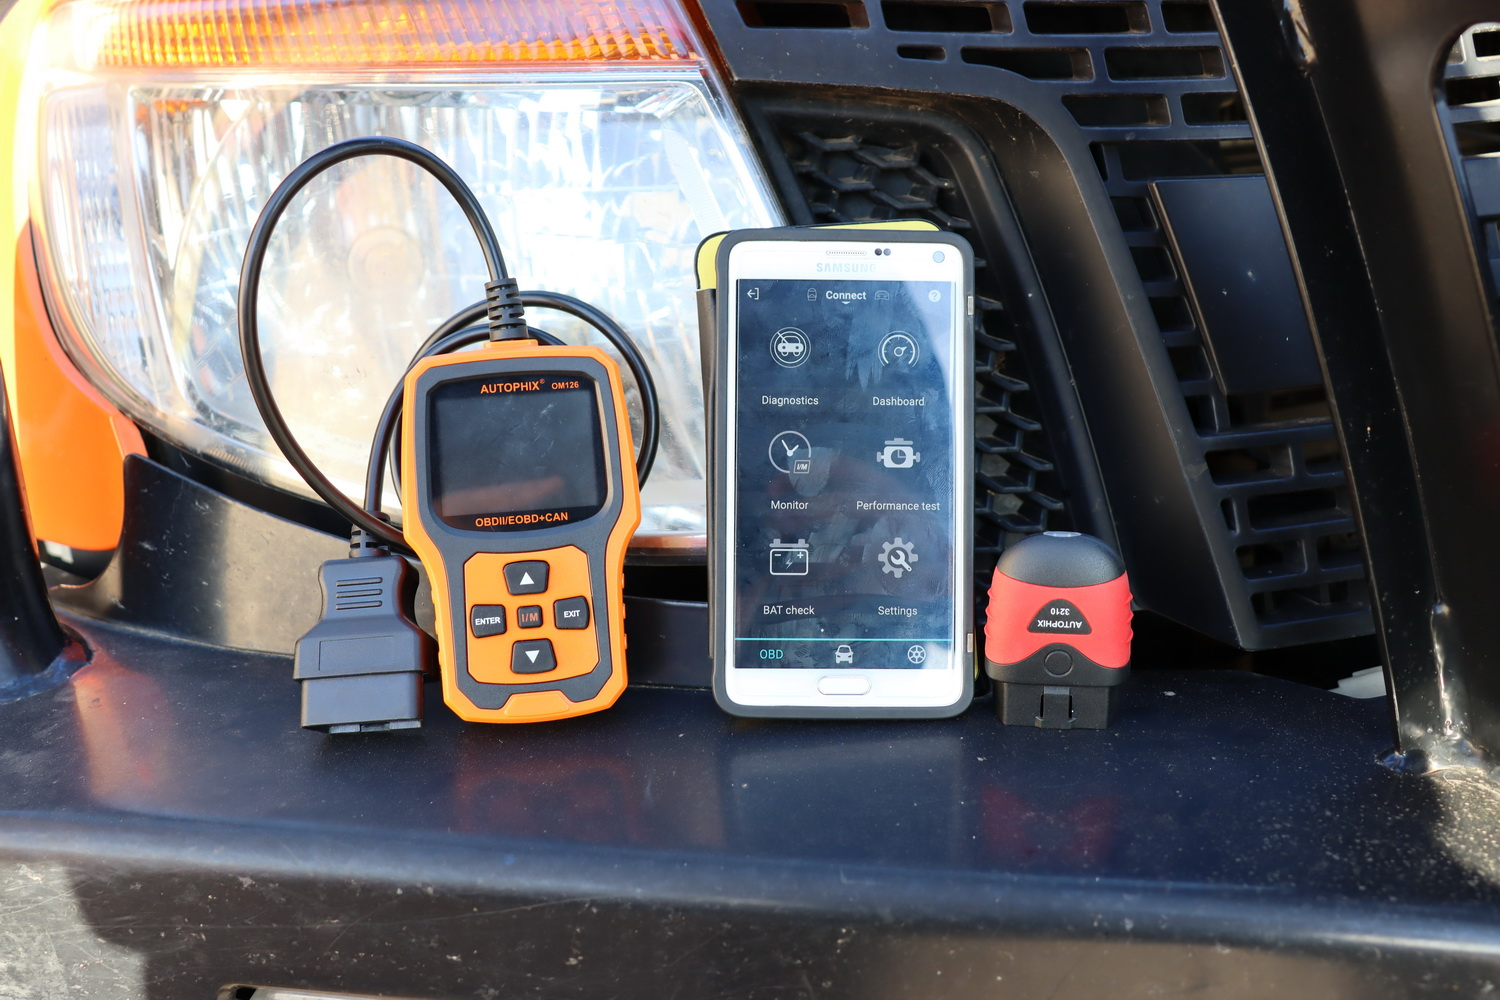 Reader views: OBD scanners